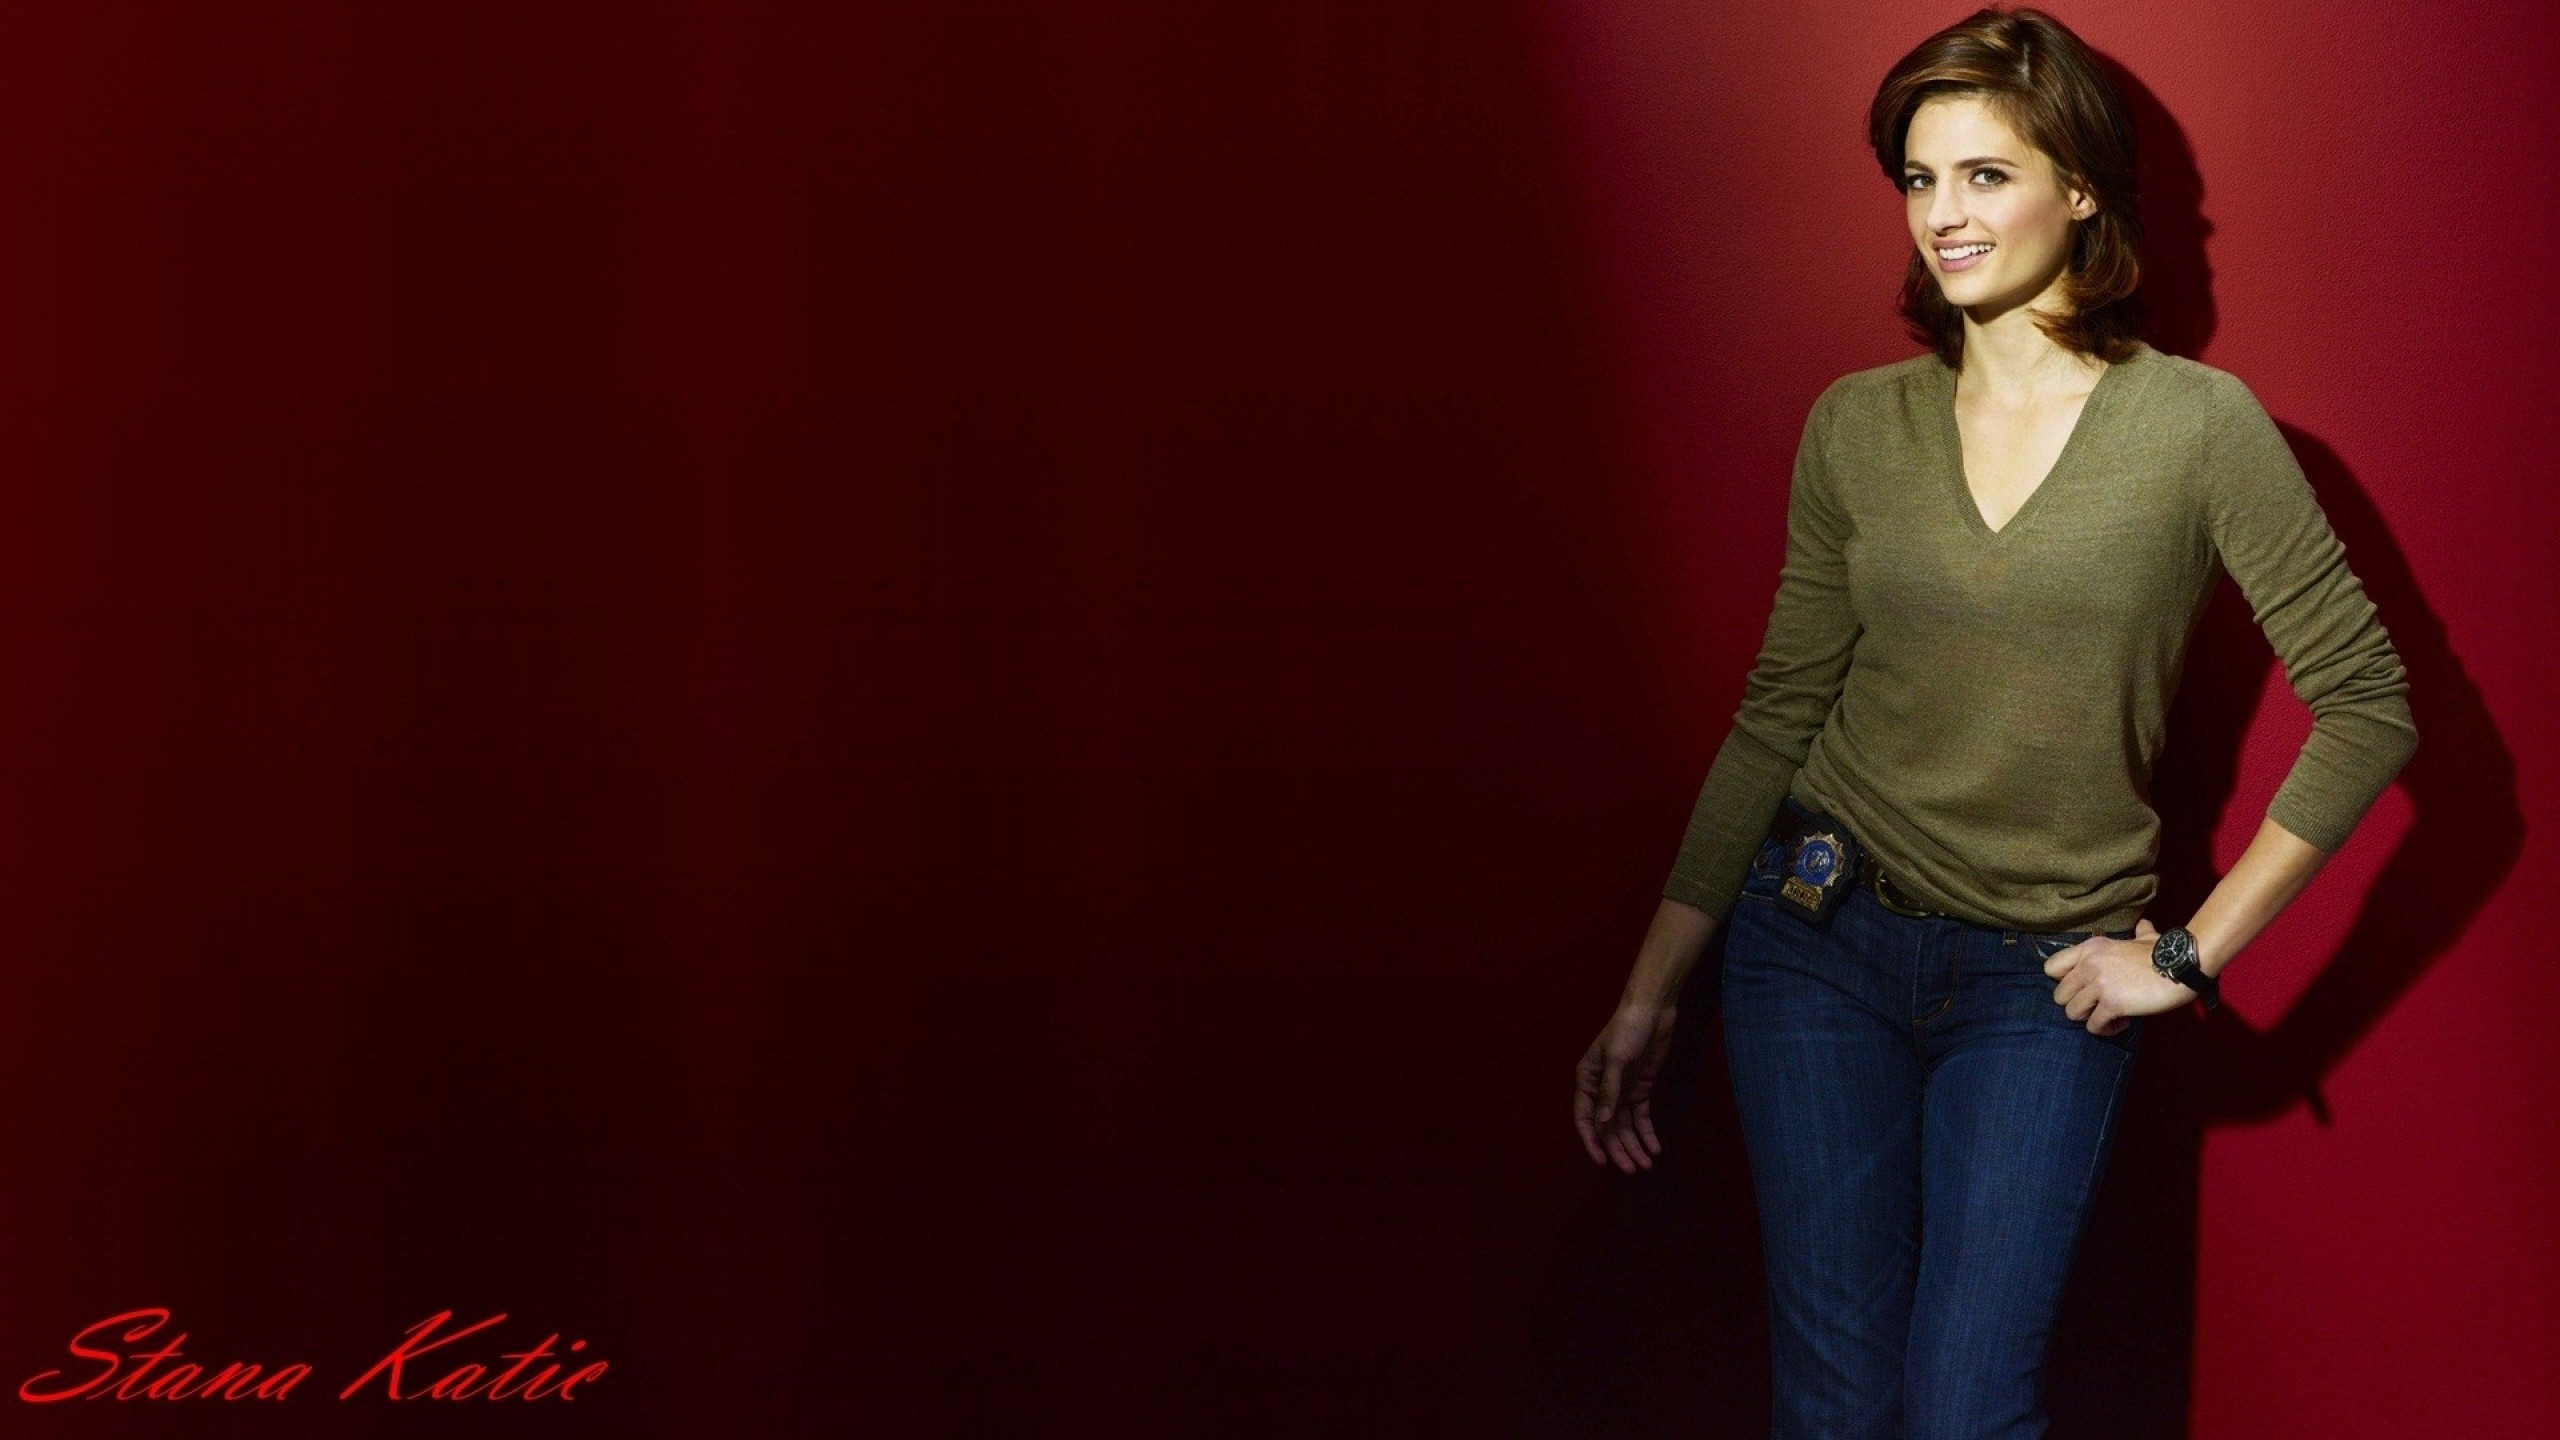 2560x1440 brunettes women smiling stana katic red background castle tv series kate  beckett 1920x1080 wallpa Art HD